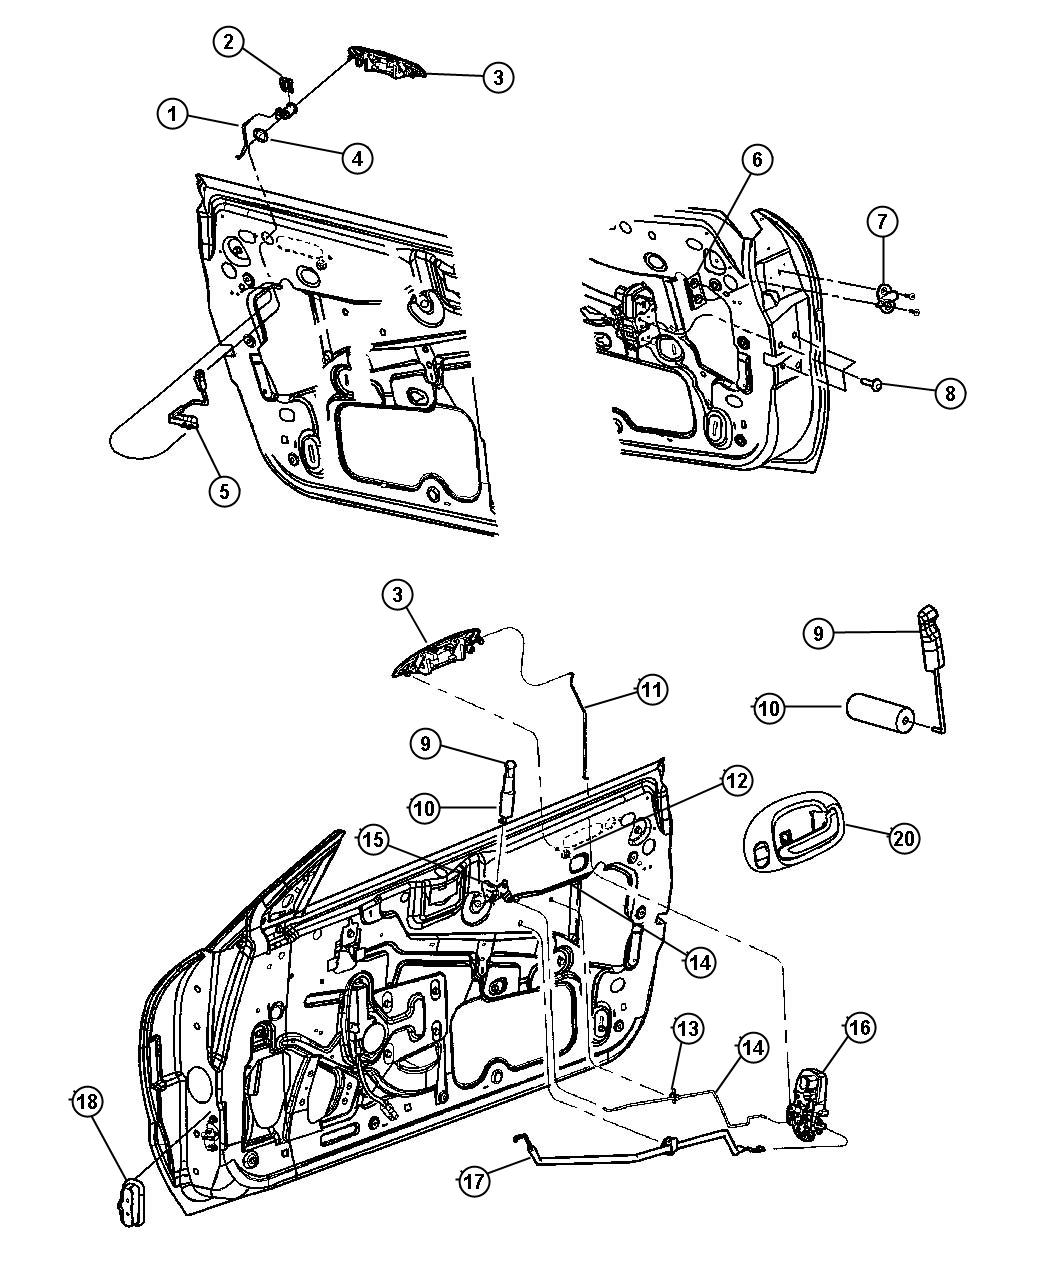 gmc topkick c4500 suspension diagram  gmc  auto wiring diagram